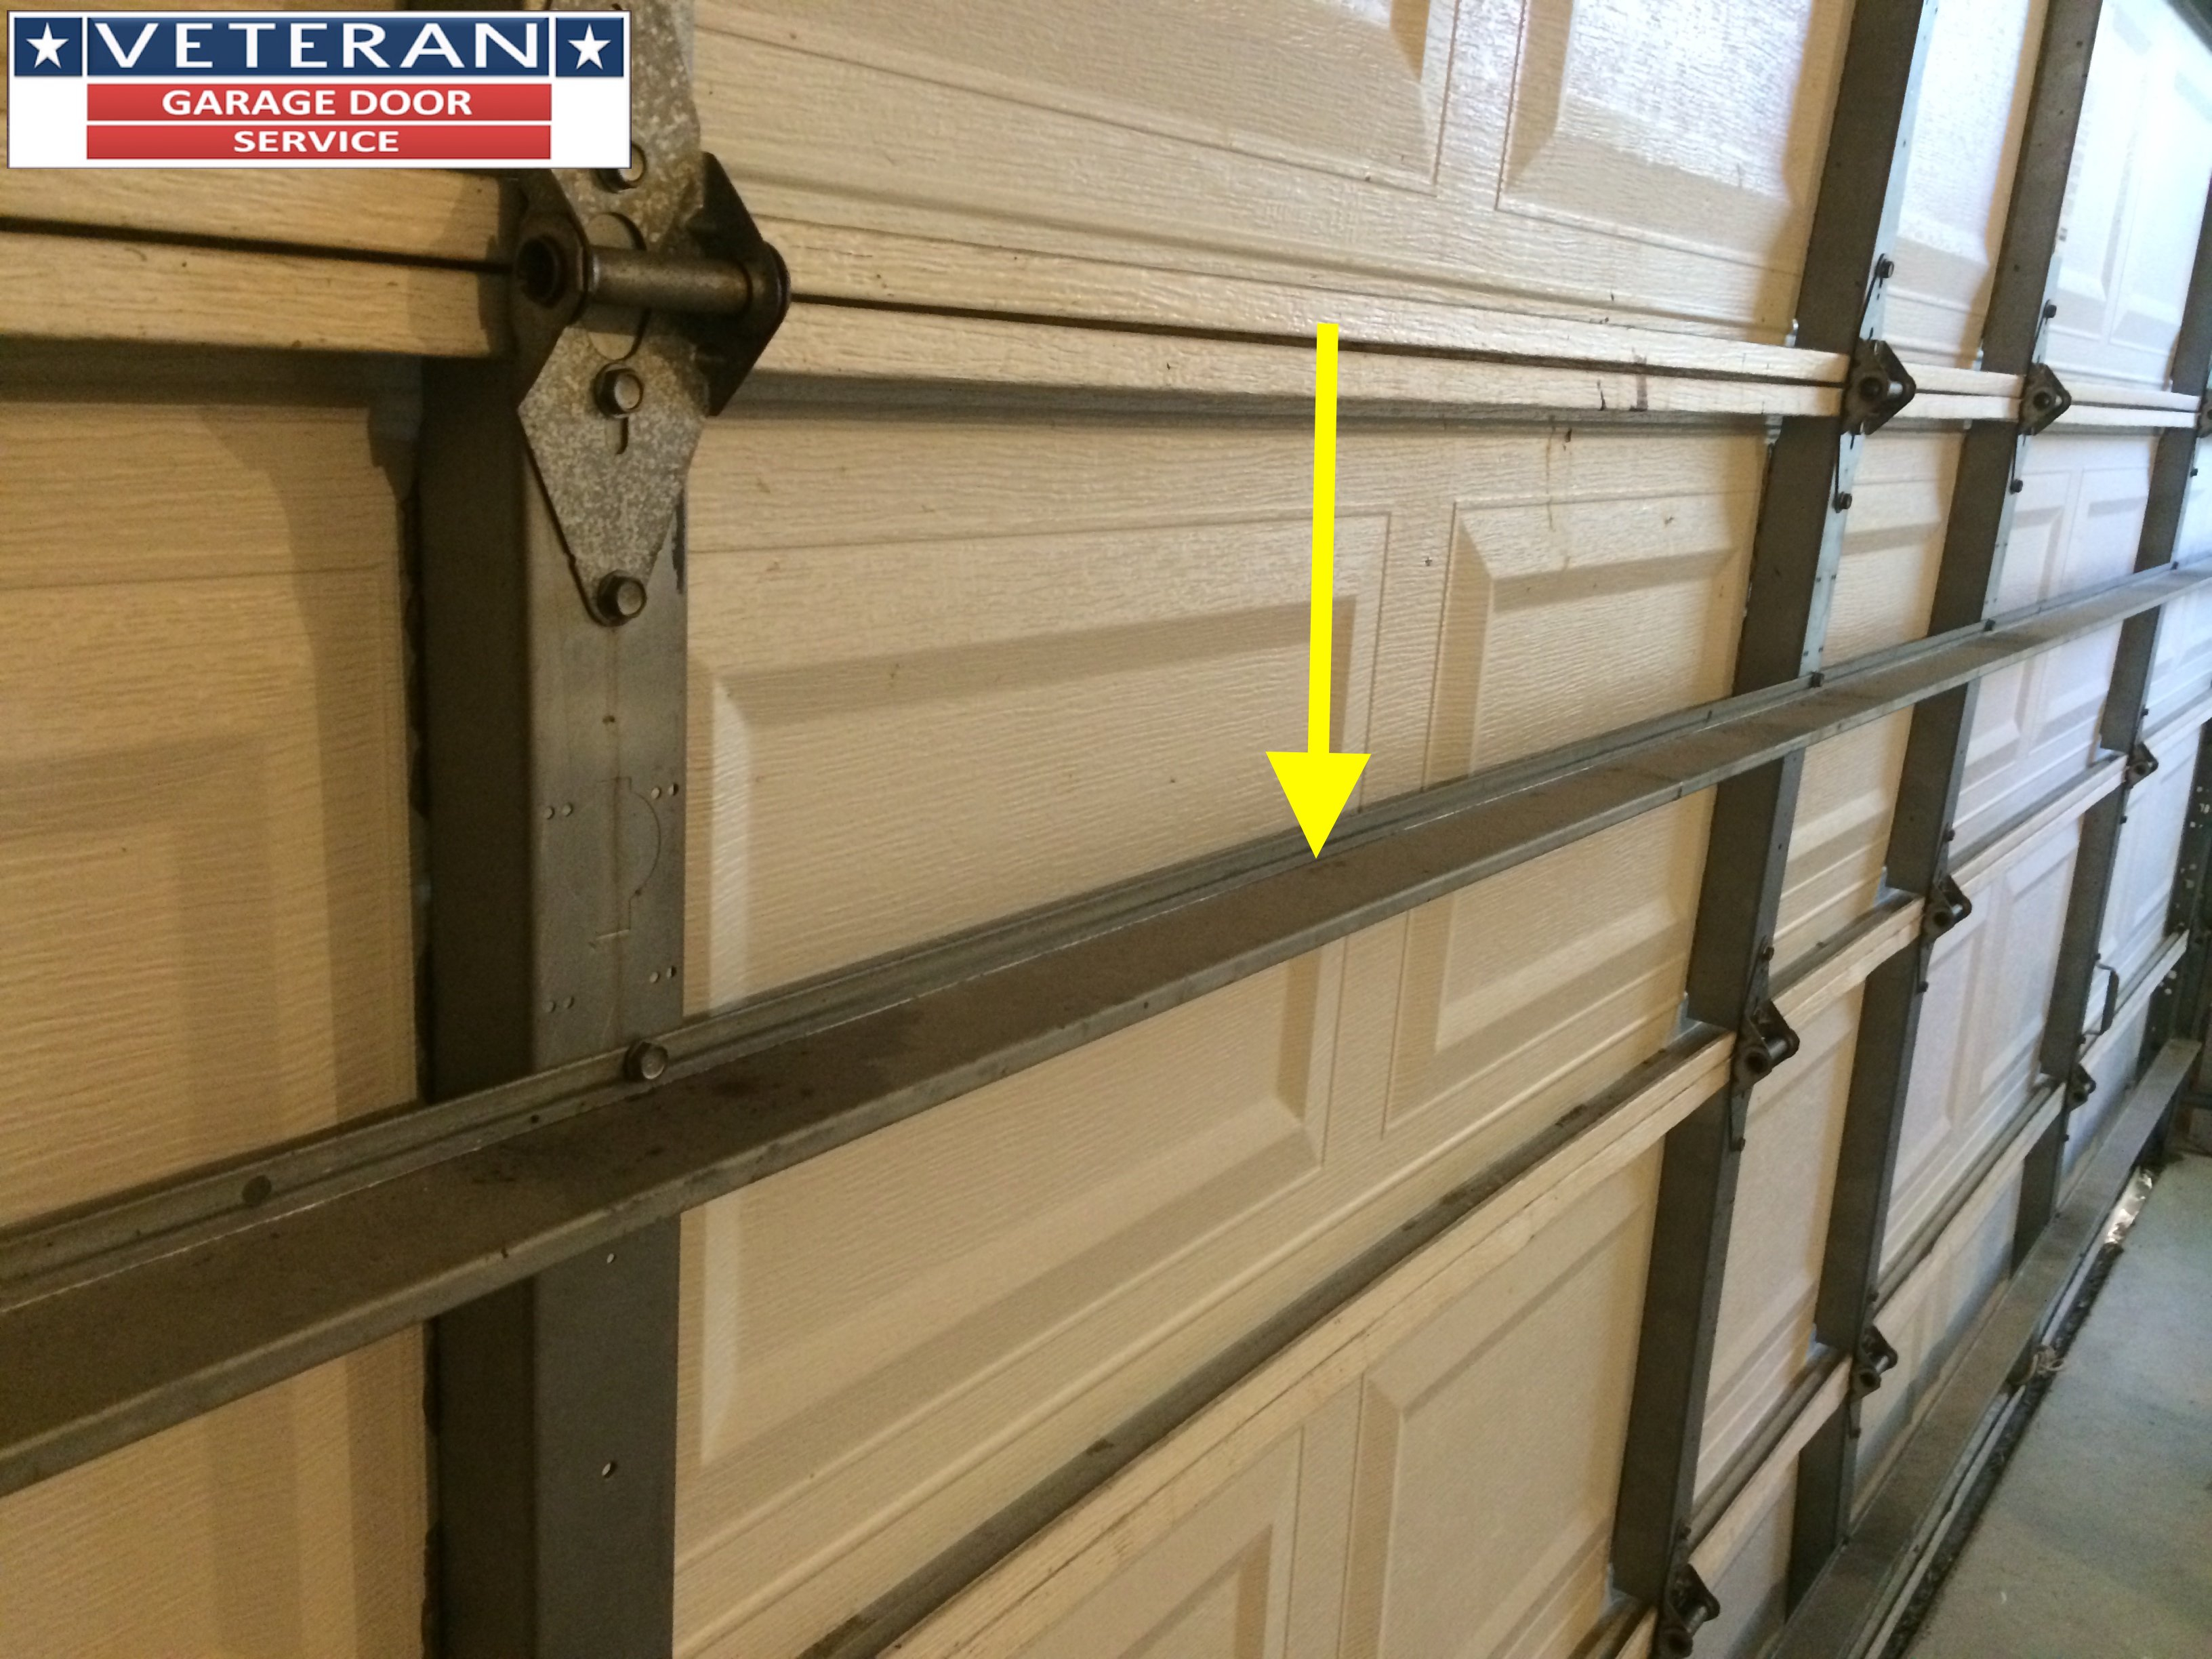 Should I Install A Strut Or Replace My Garage Door Section intended for size 3264 X 2448